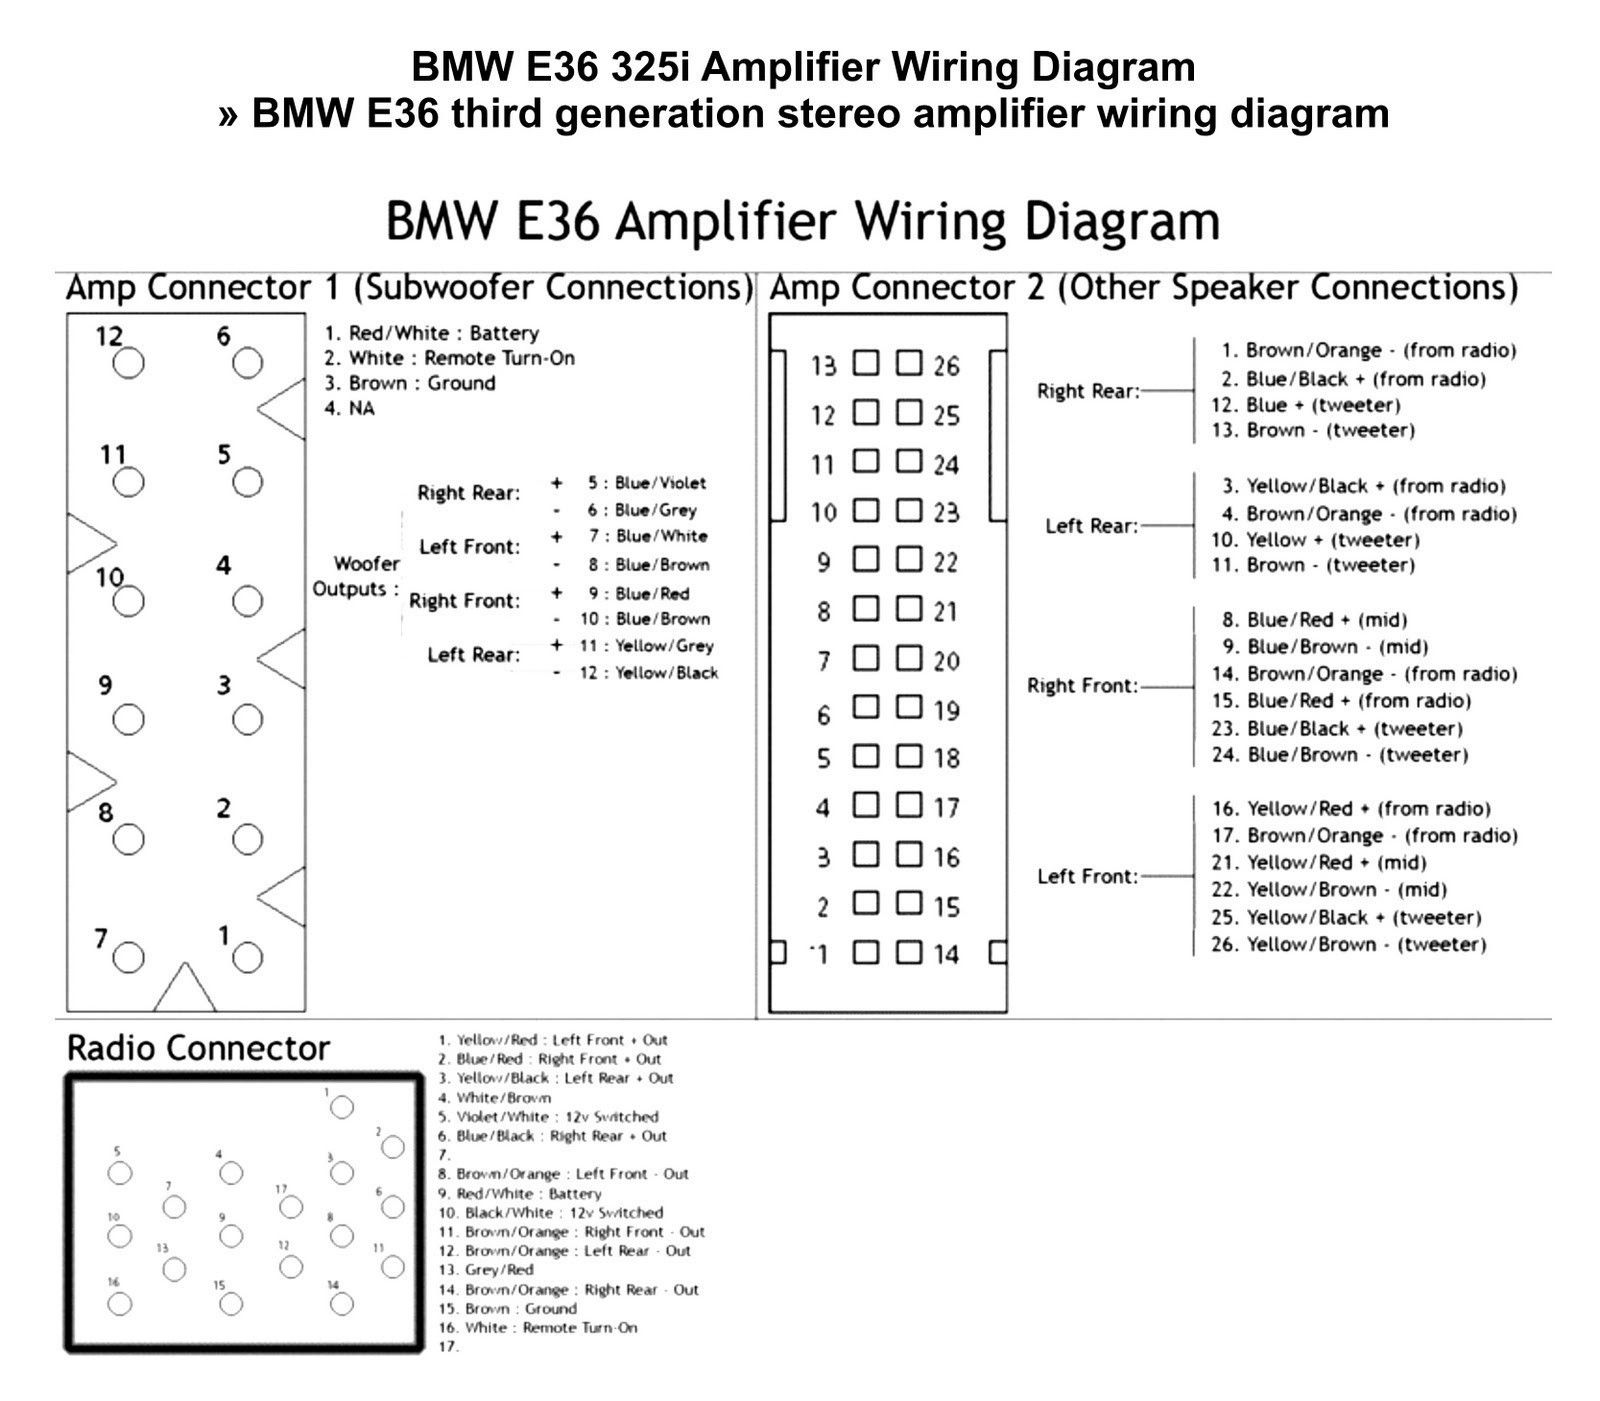 E36 Amplifier Wiring Diagram Diagram Diagramtemplate Diagramsample Bmw Diagram Bmw E46